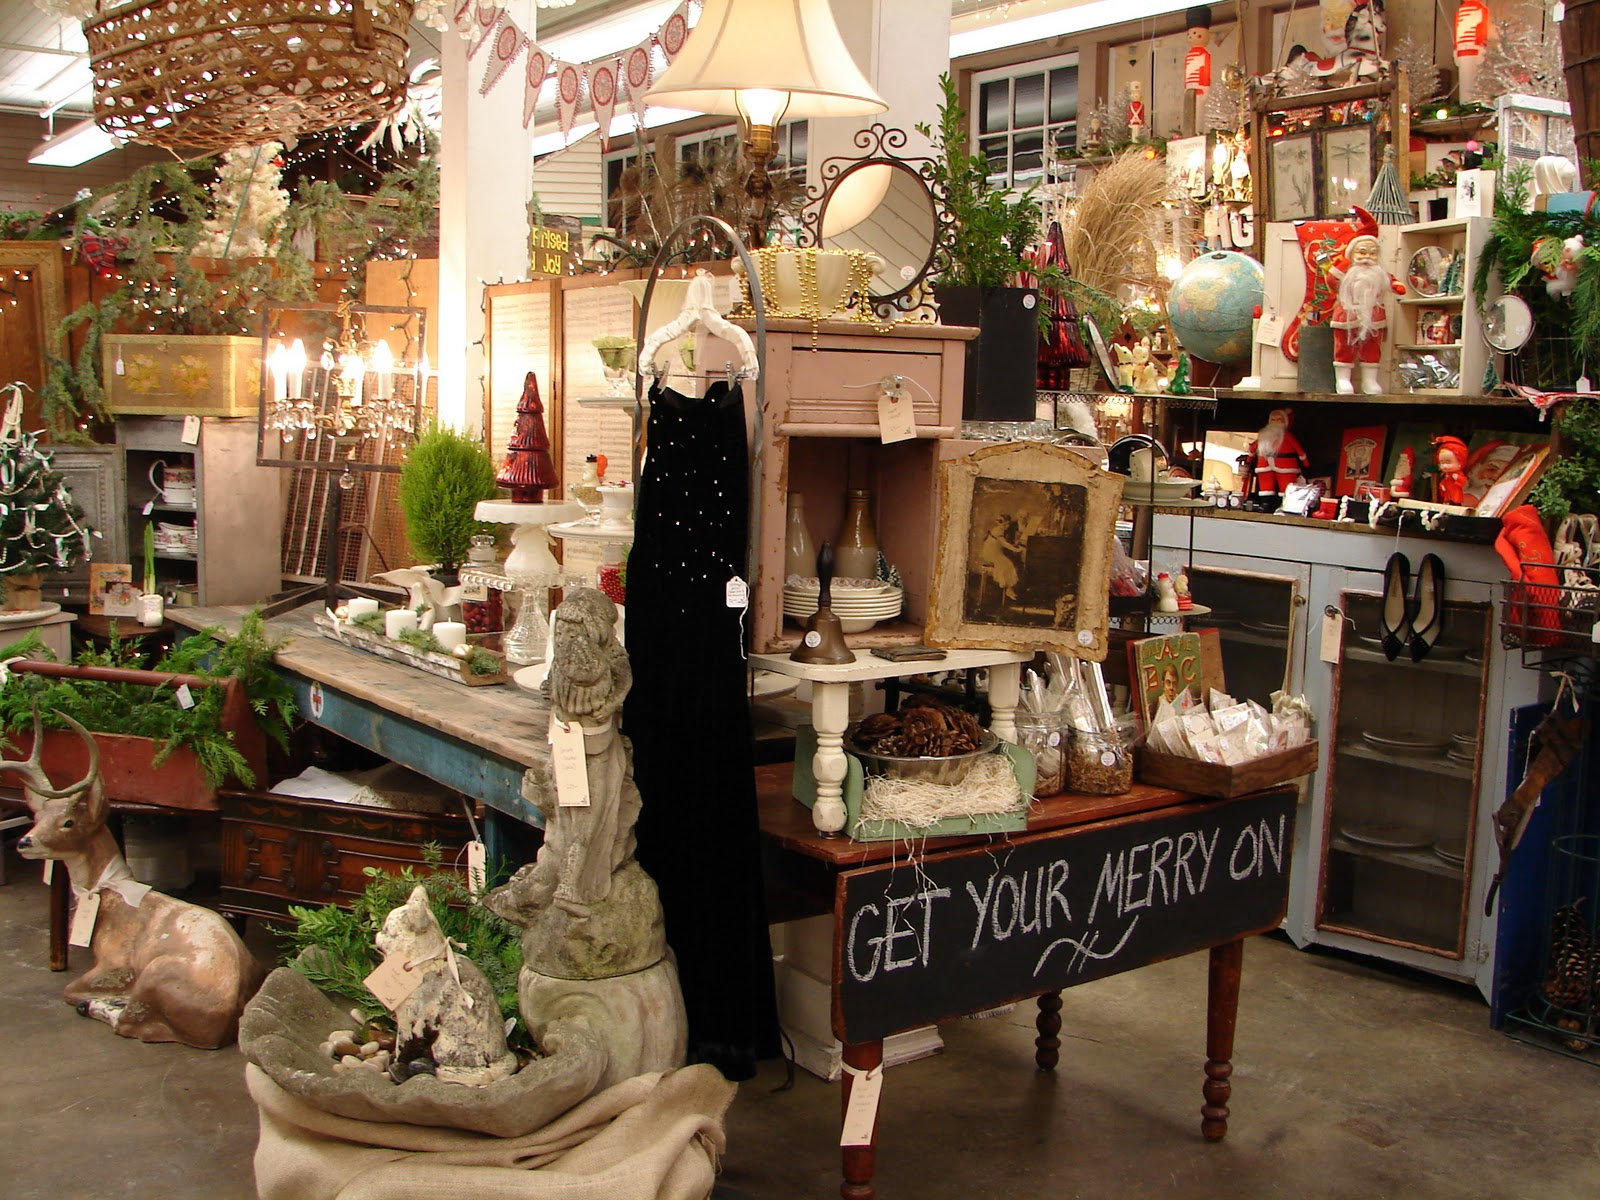 Monticello antique marketplace an amazing christmas show for Antique marketplace